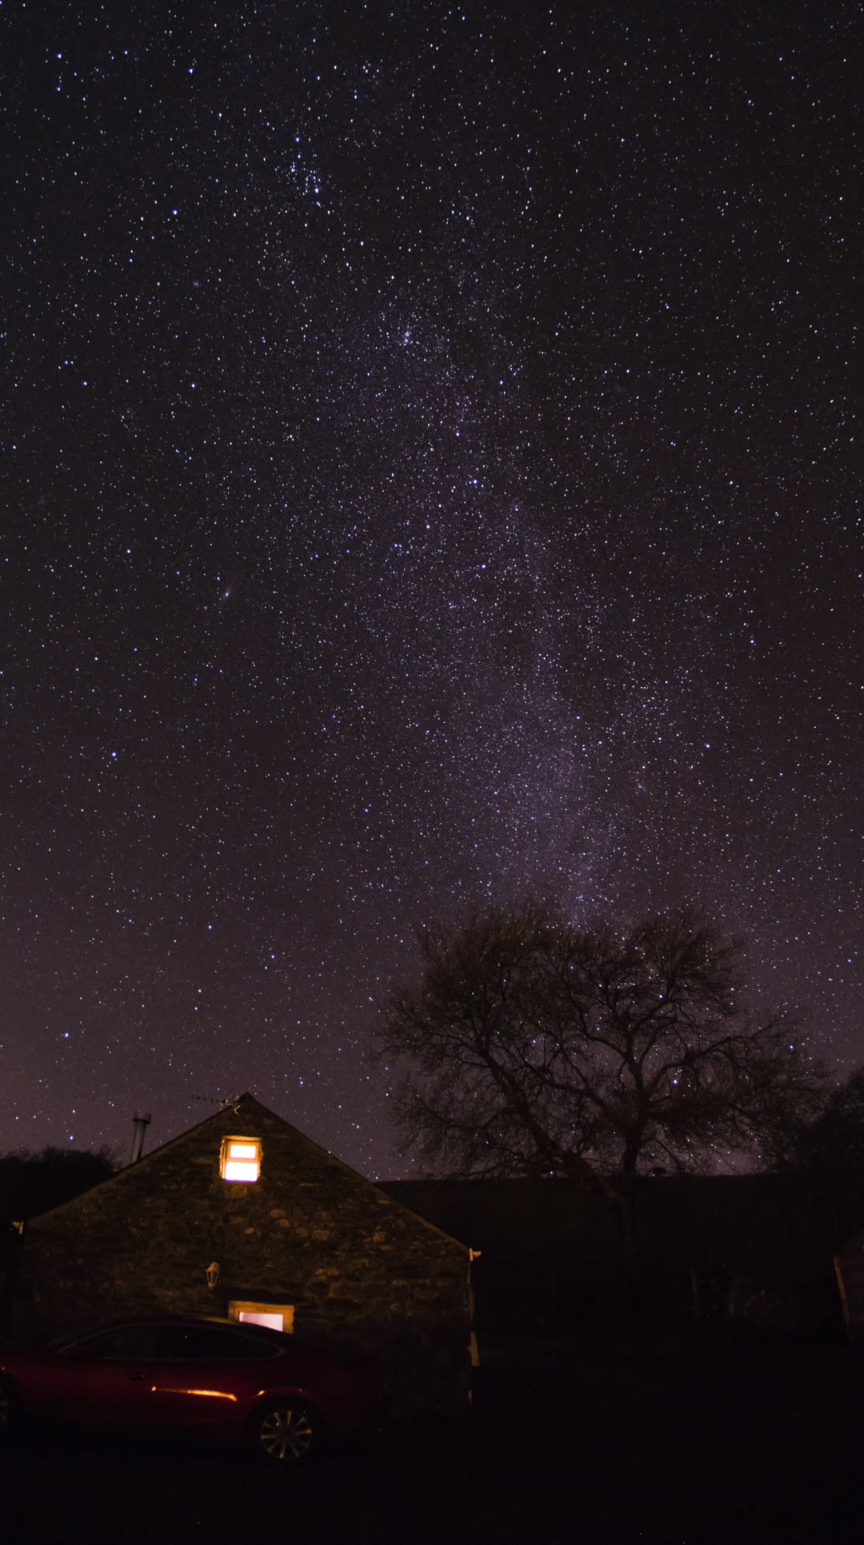 Astrophotography is so much fun, and you can do it with almost any camera! This ... -    Astrophotography is so much fun, and you can do it with almost any camera! This was taken with a micro four thirds camera, the Lumix GH5. I love the timelapse effect as well.     #astrophotography #photographytips #milkyway   Astrophotography is so much fun, and you can do it with almost any camera! This …  🧸𝕿𝖍𝖊𝖇𝖊𝖊🐝 SkyRozu ○Himmel- Astrophotography is so much fun, and you can do it with almost any c